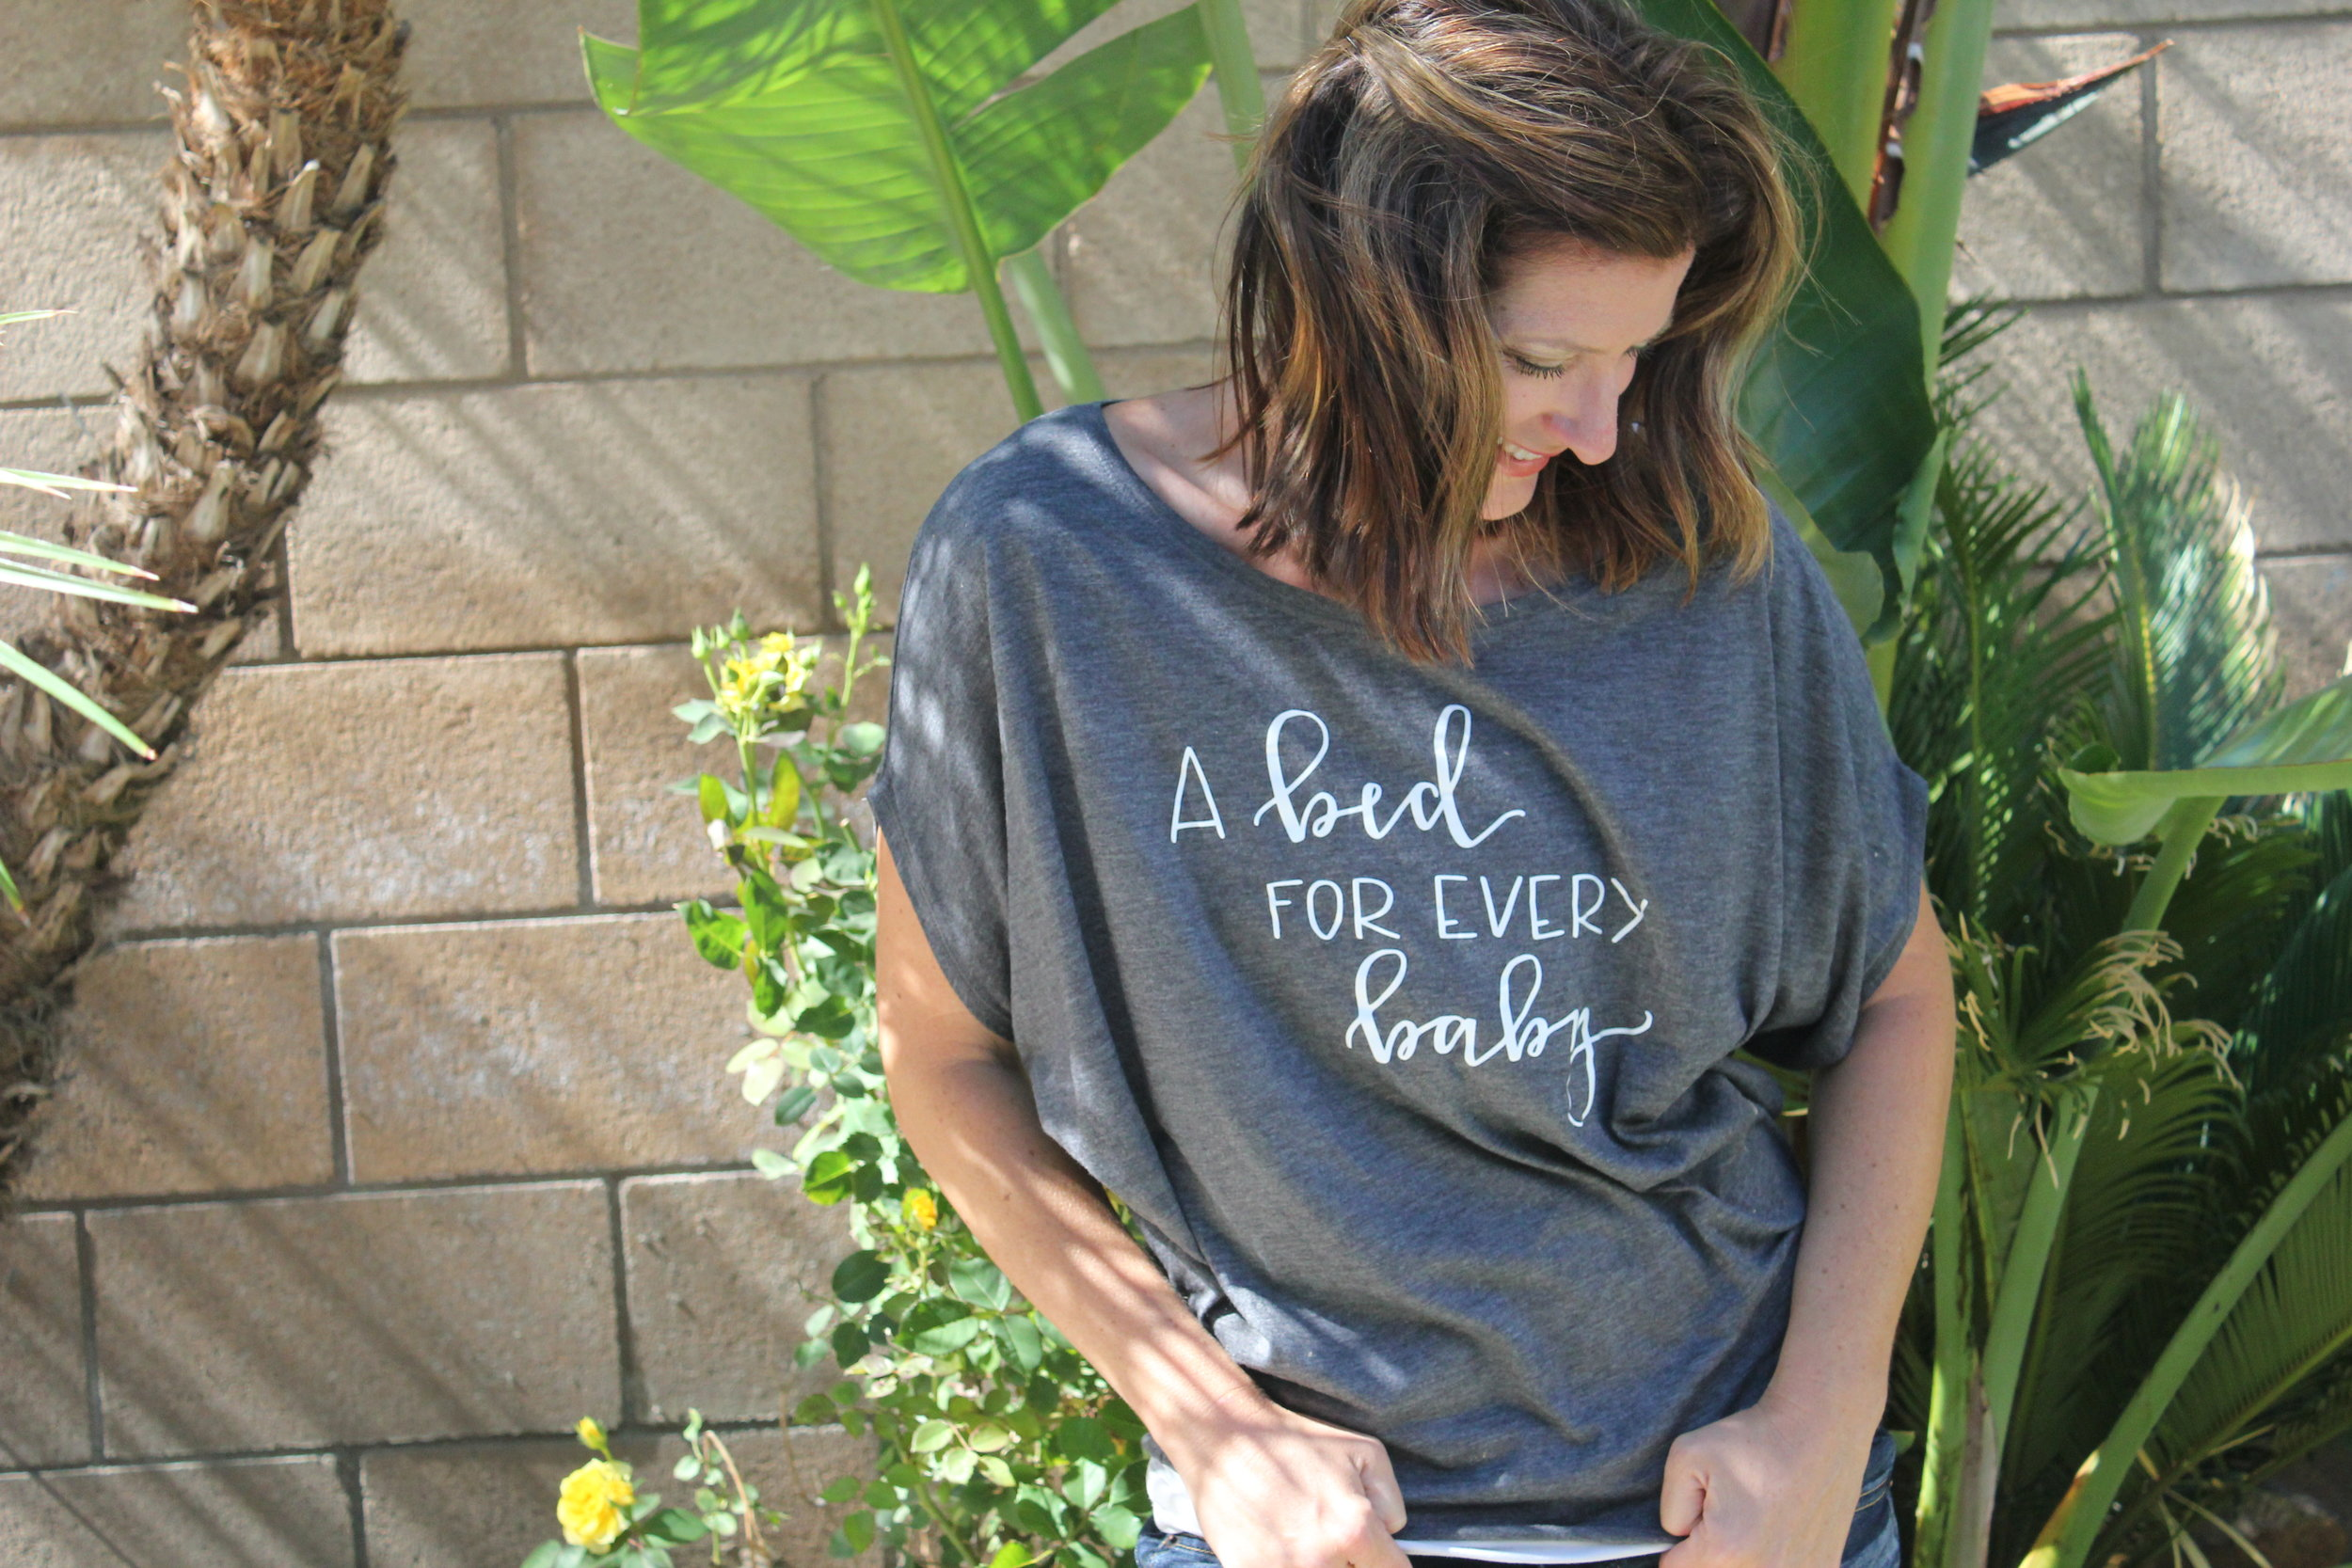 Bithiah's House - A Bed for Every Baby - a nonprofit organization OC Shirt Shop donates to with shirt sales